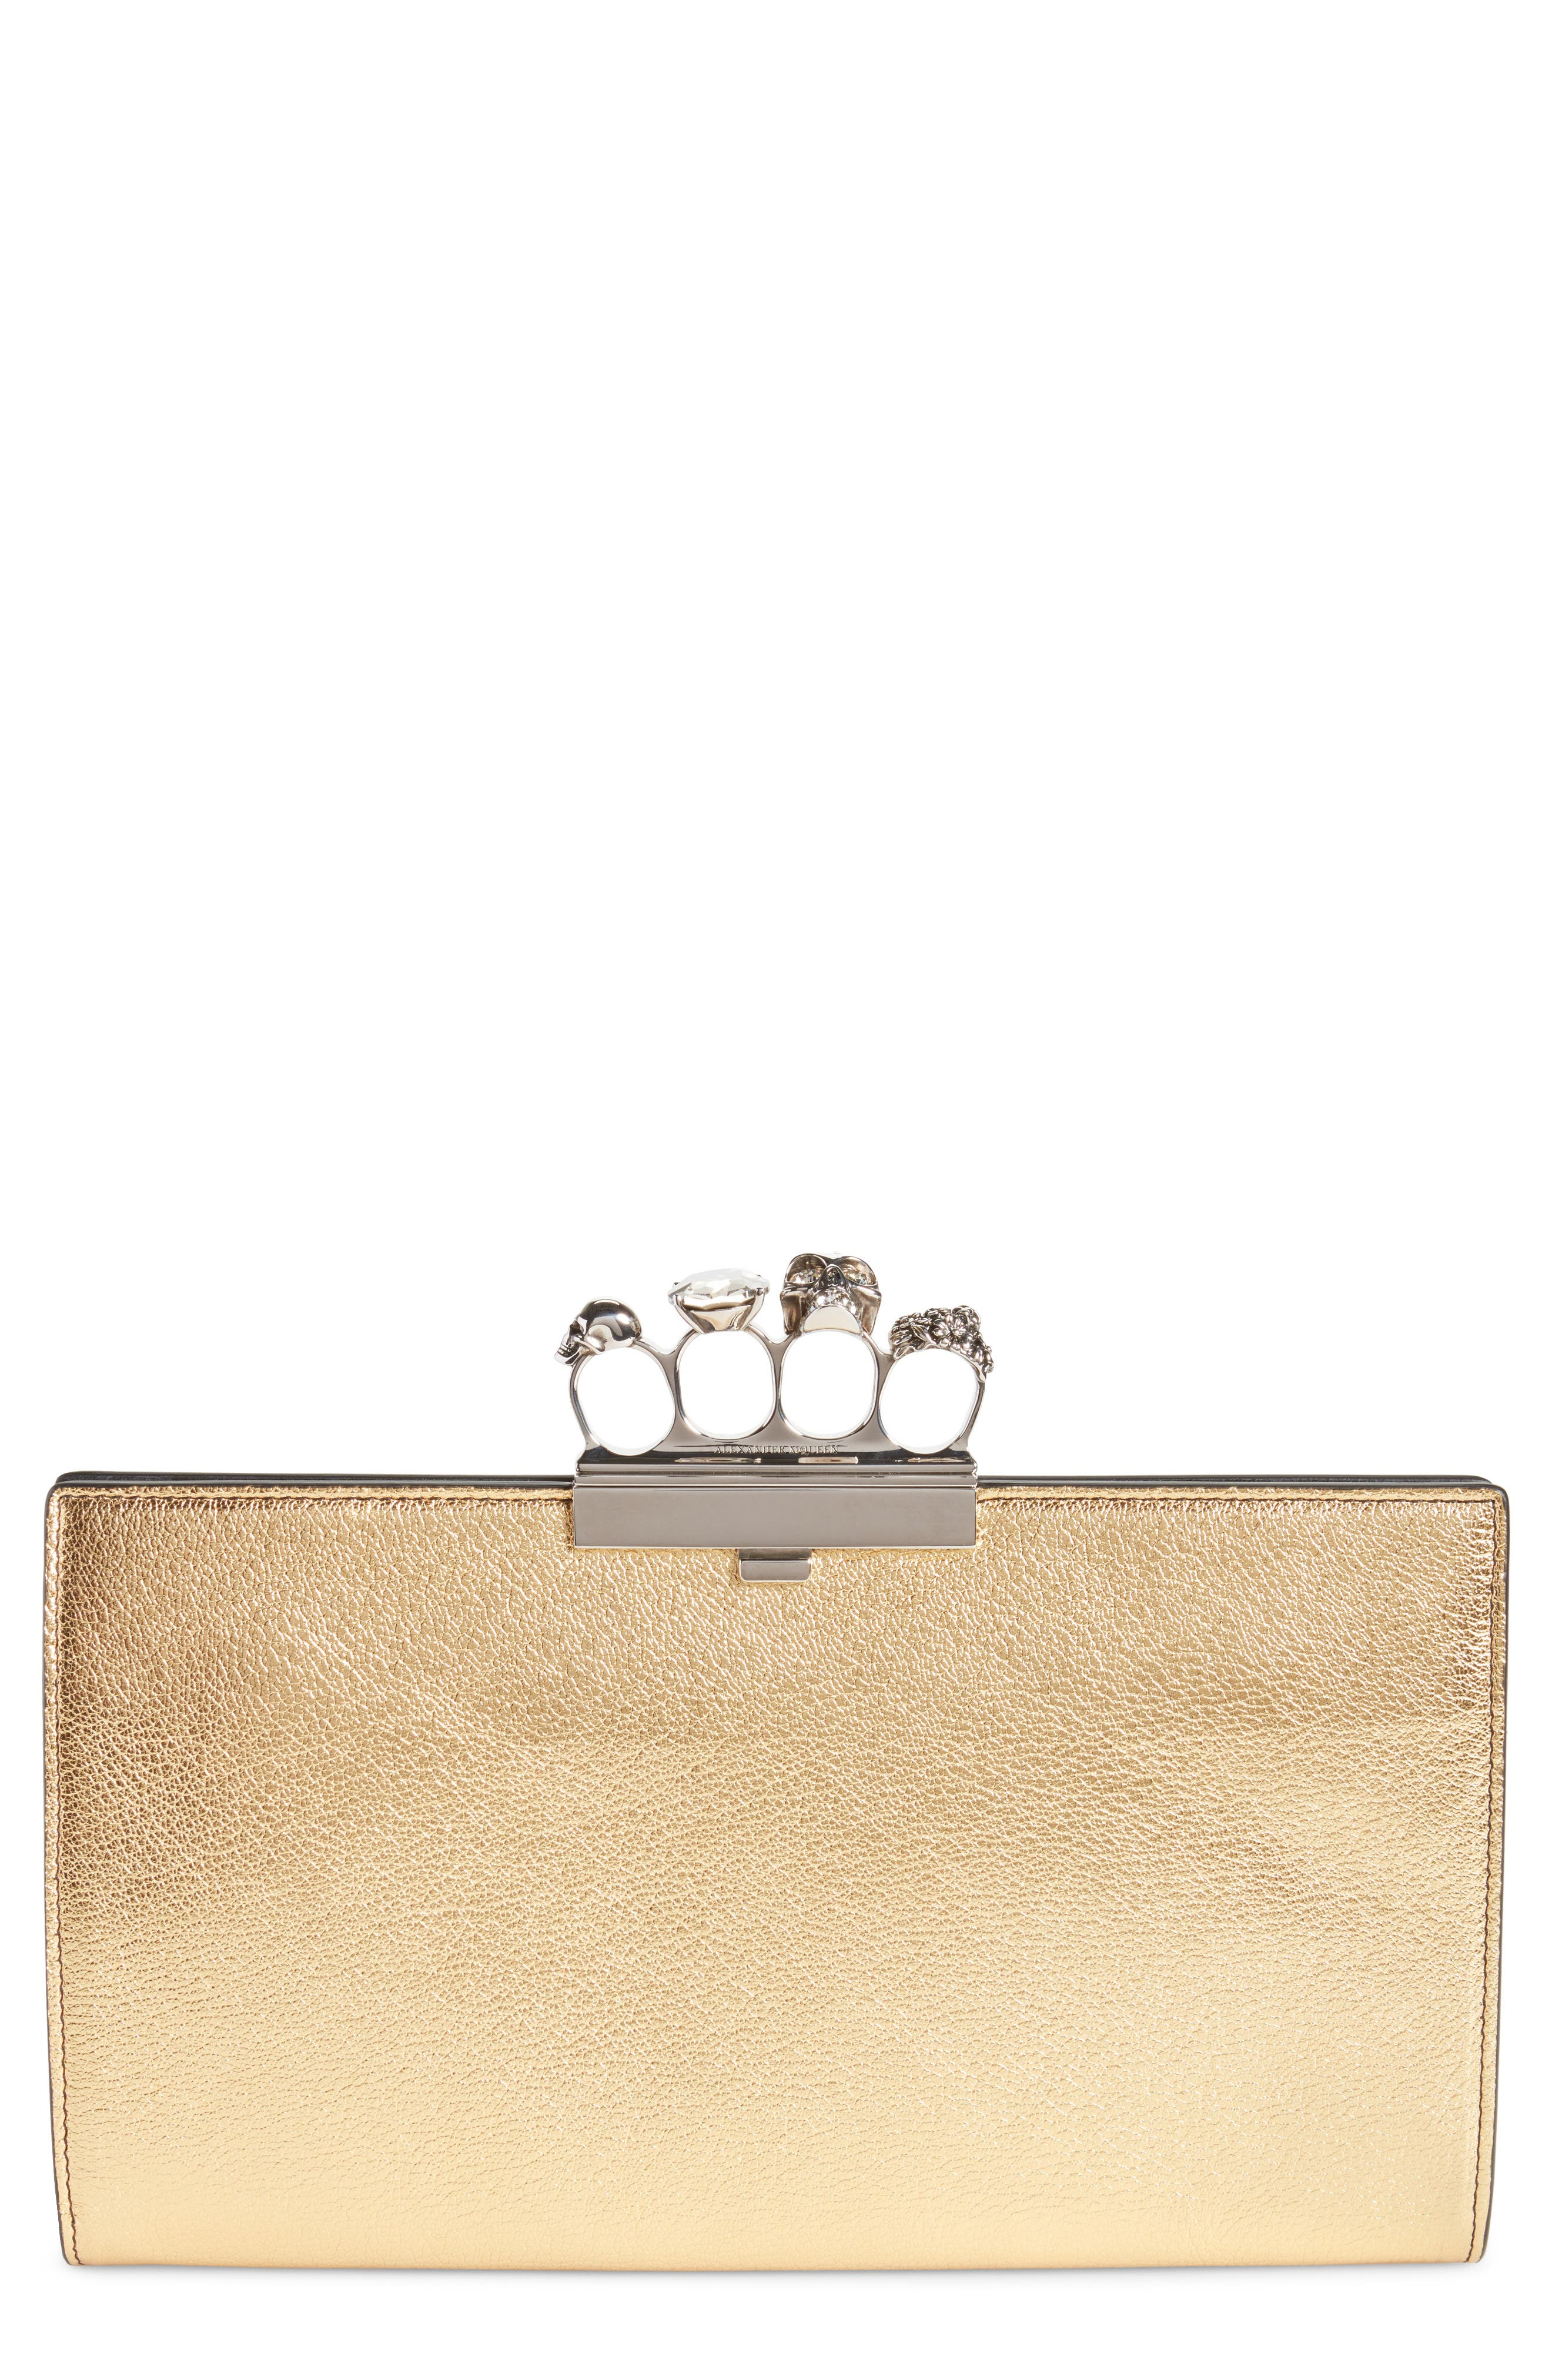 Alternate Image 1 Selected - Alexander McQueen Knuckle Clasp Metallic Leather Clutch